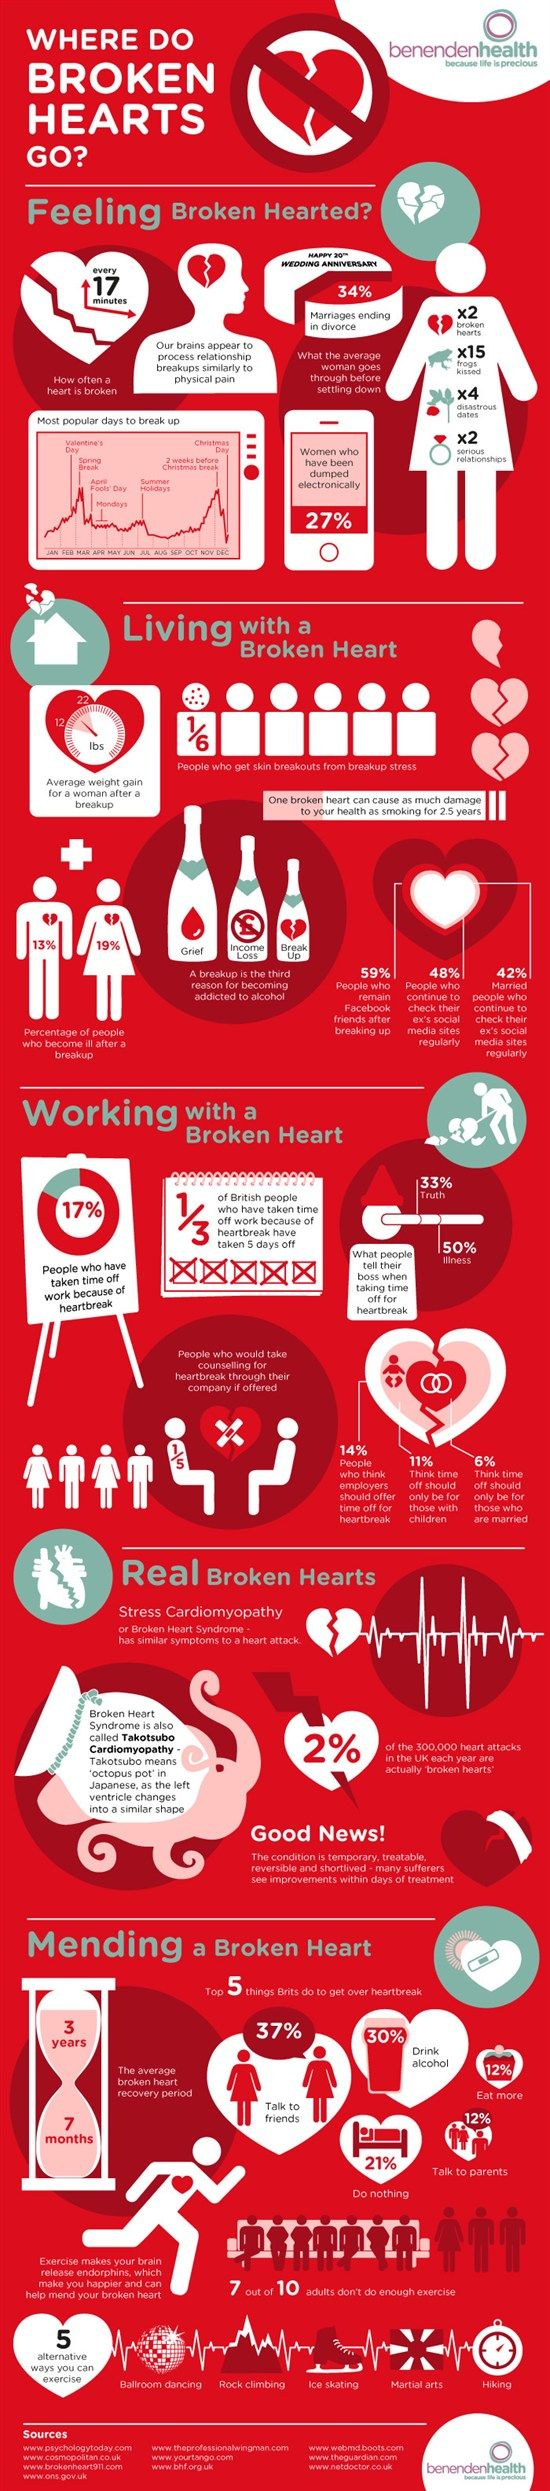 Where Do Broken Hearts Go InfoGraphic  www.benendenhealth.co.uk